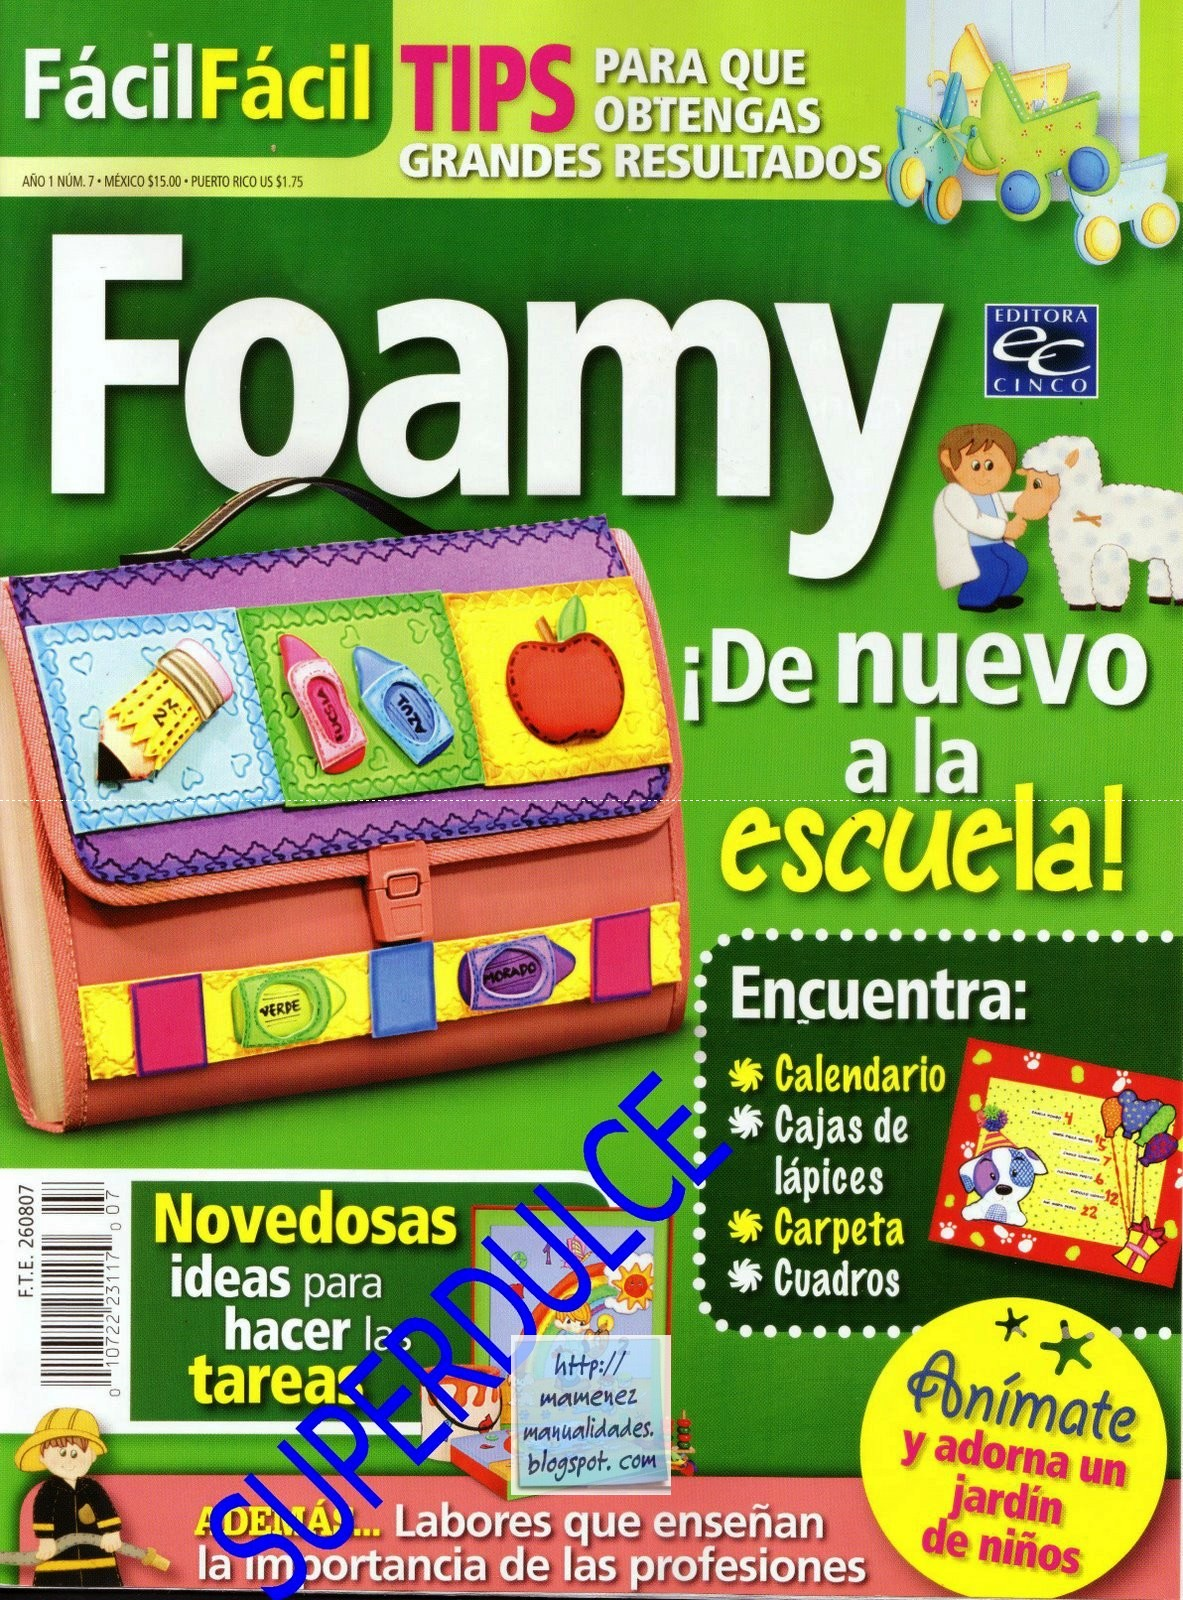 Revista: FácilFácil No. 7. Foamy